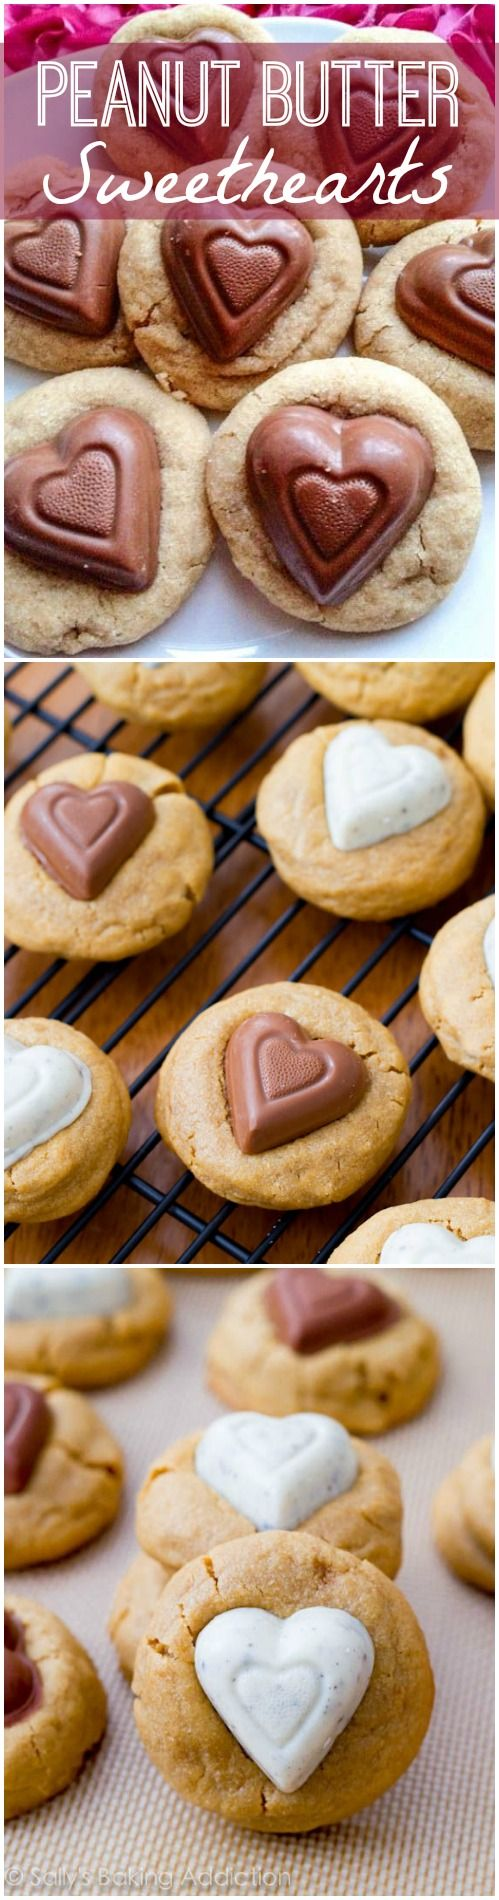 My favorite soft-baked and extra thick peanut butter cookie recipe with heart shaped chocolates.